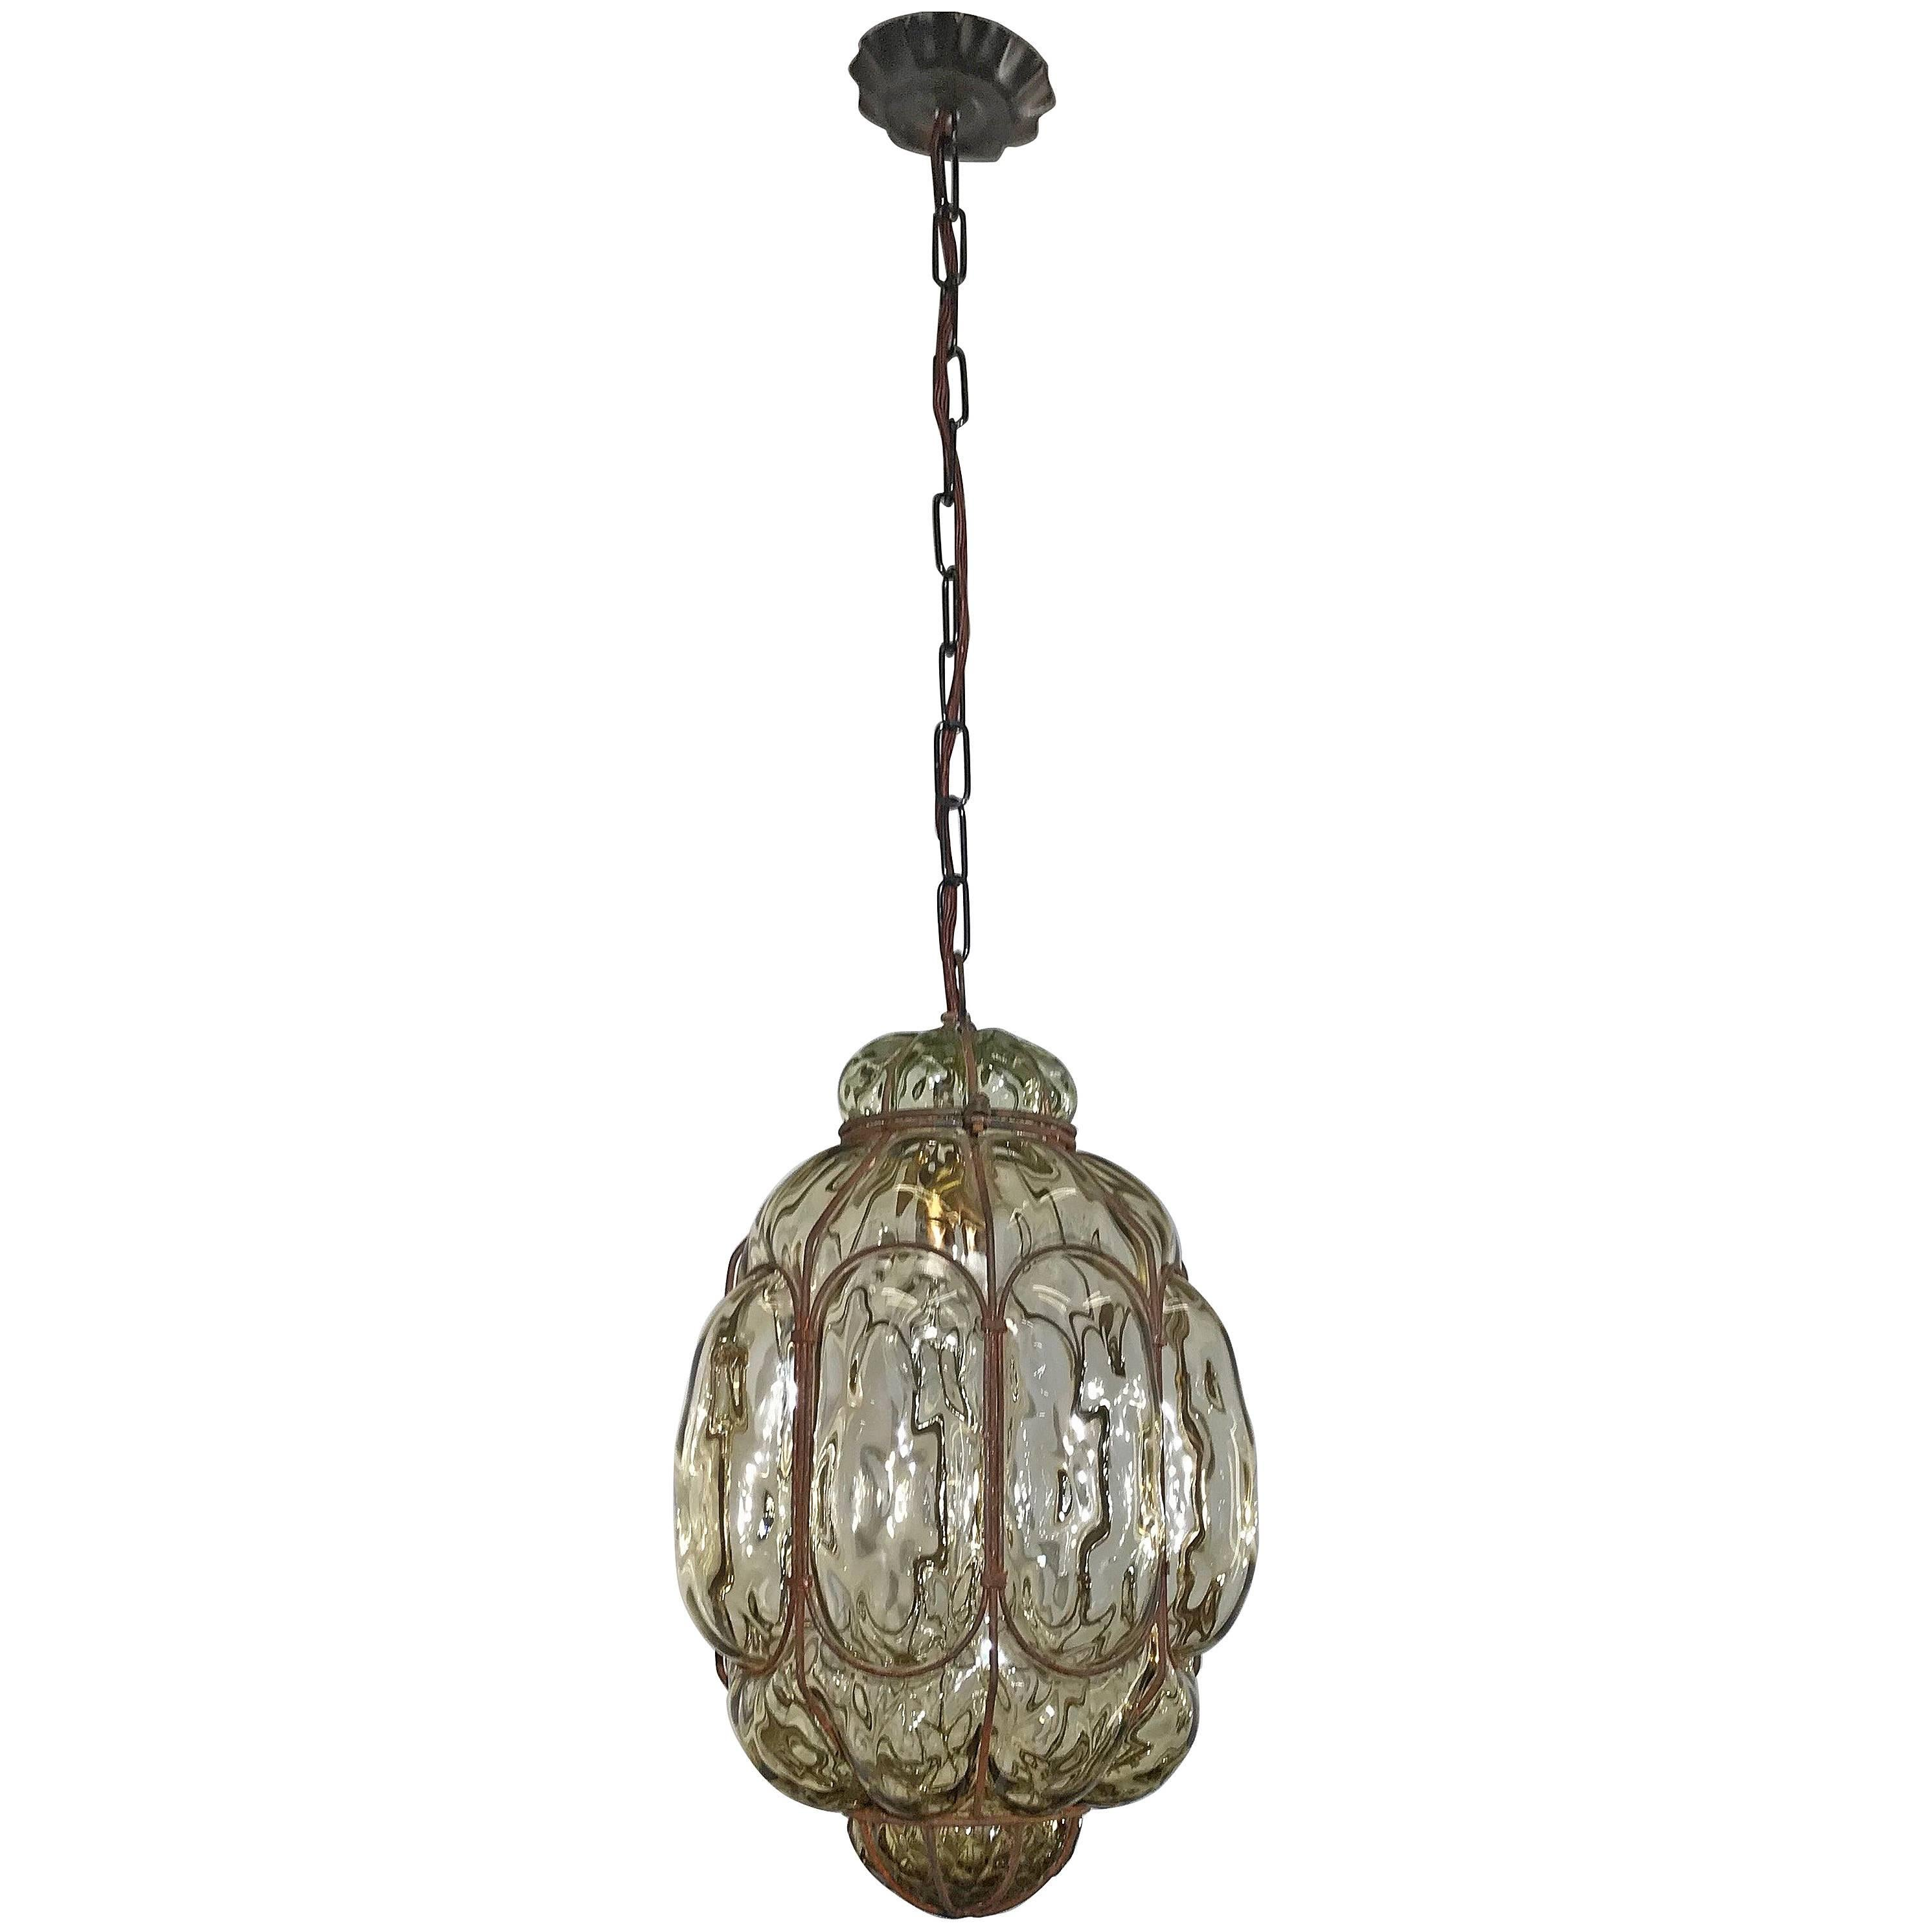 Blown glass light fixtures Coloured Glass Vintage Venetian Mouth Blown Glass In Metal Frame Pendant Light Fixture At 1stdibs The Antique And Artisan Gallery Vintage Venetian Mouth Blown Glass In Metal Frame Pendant Light